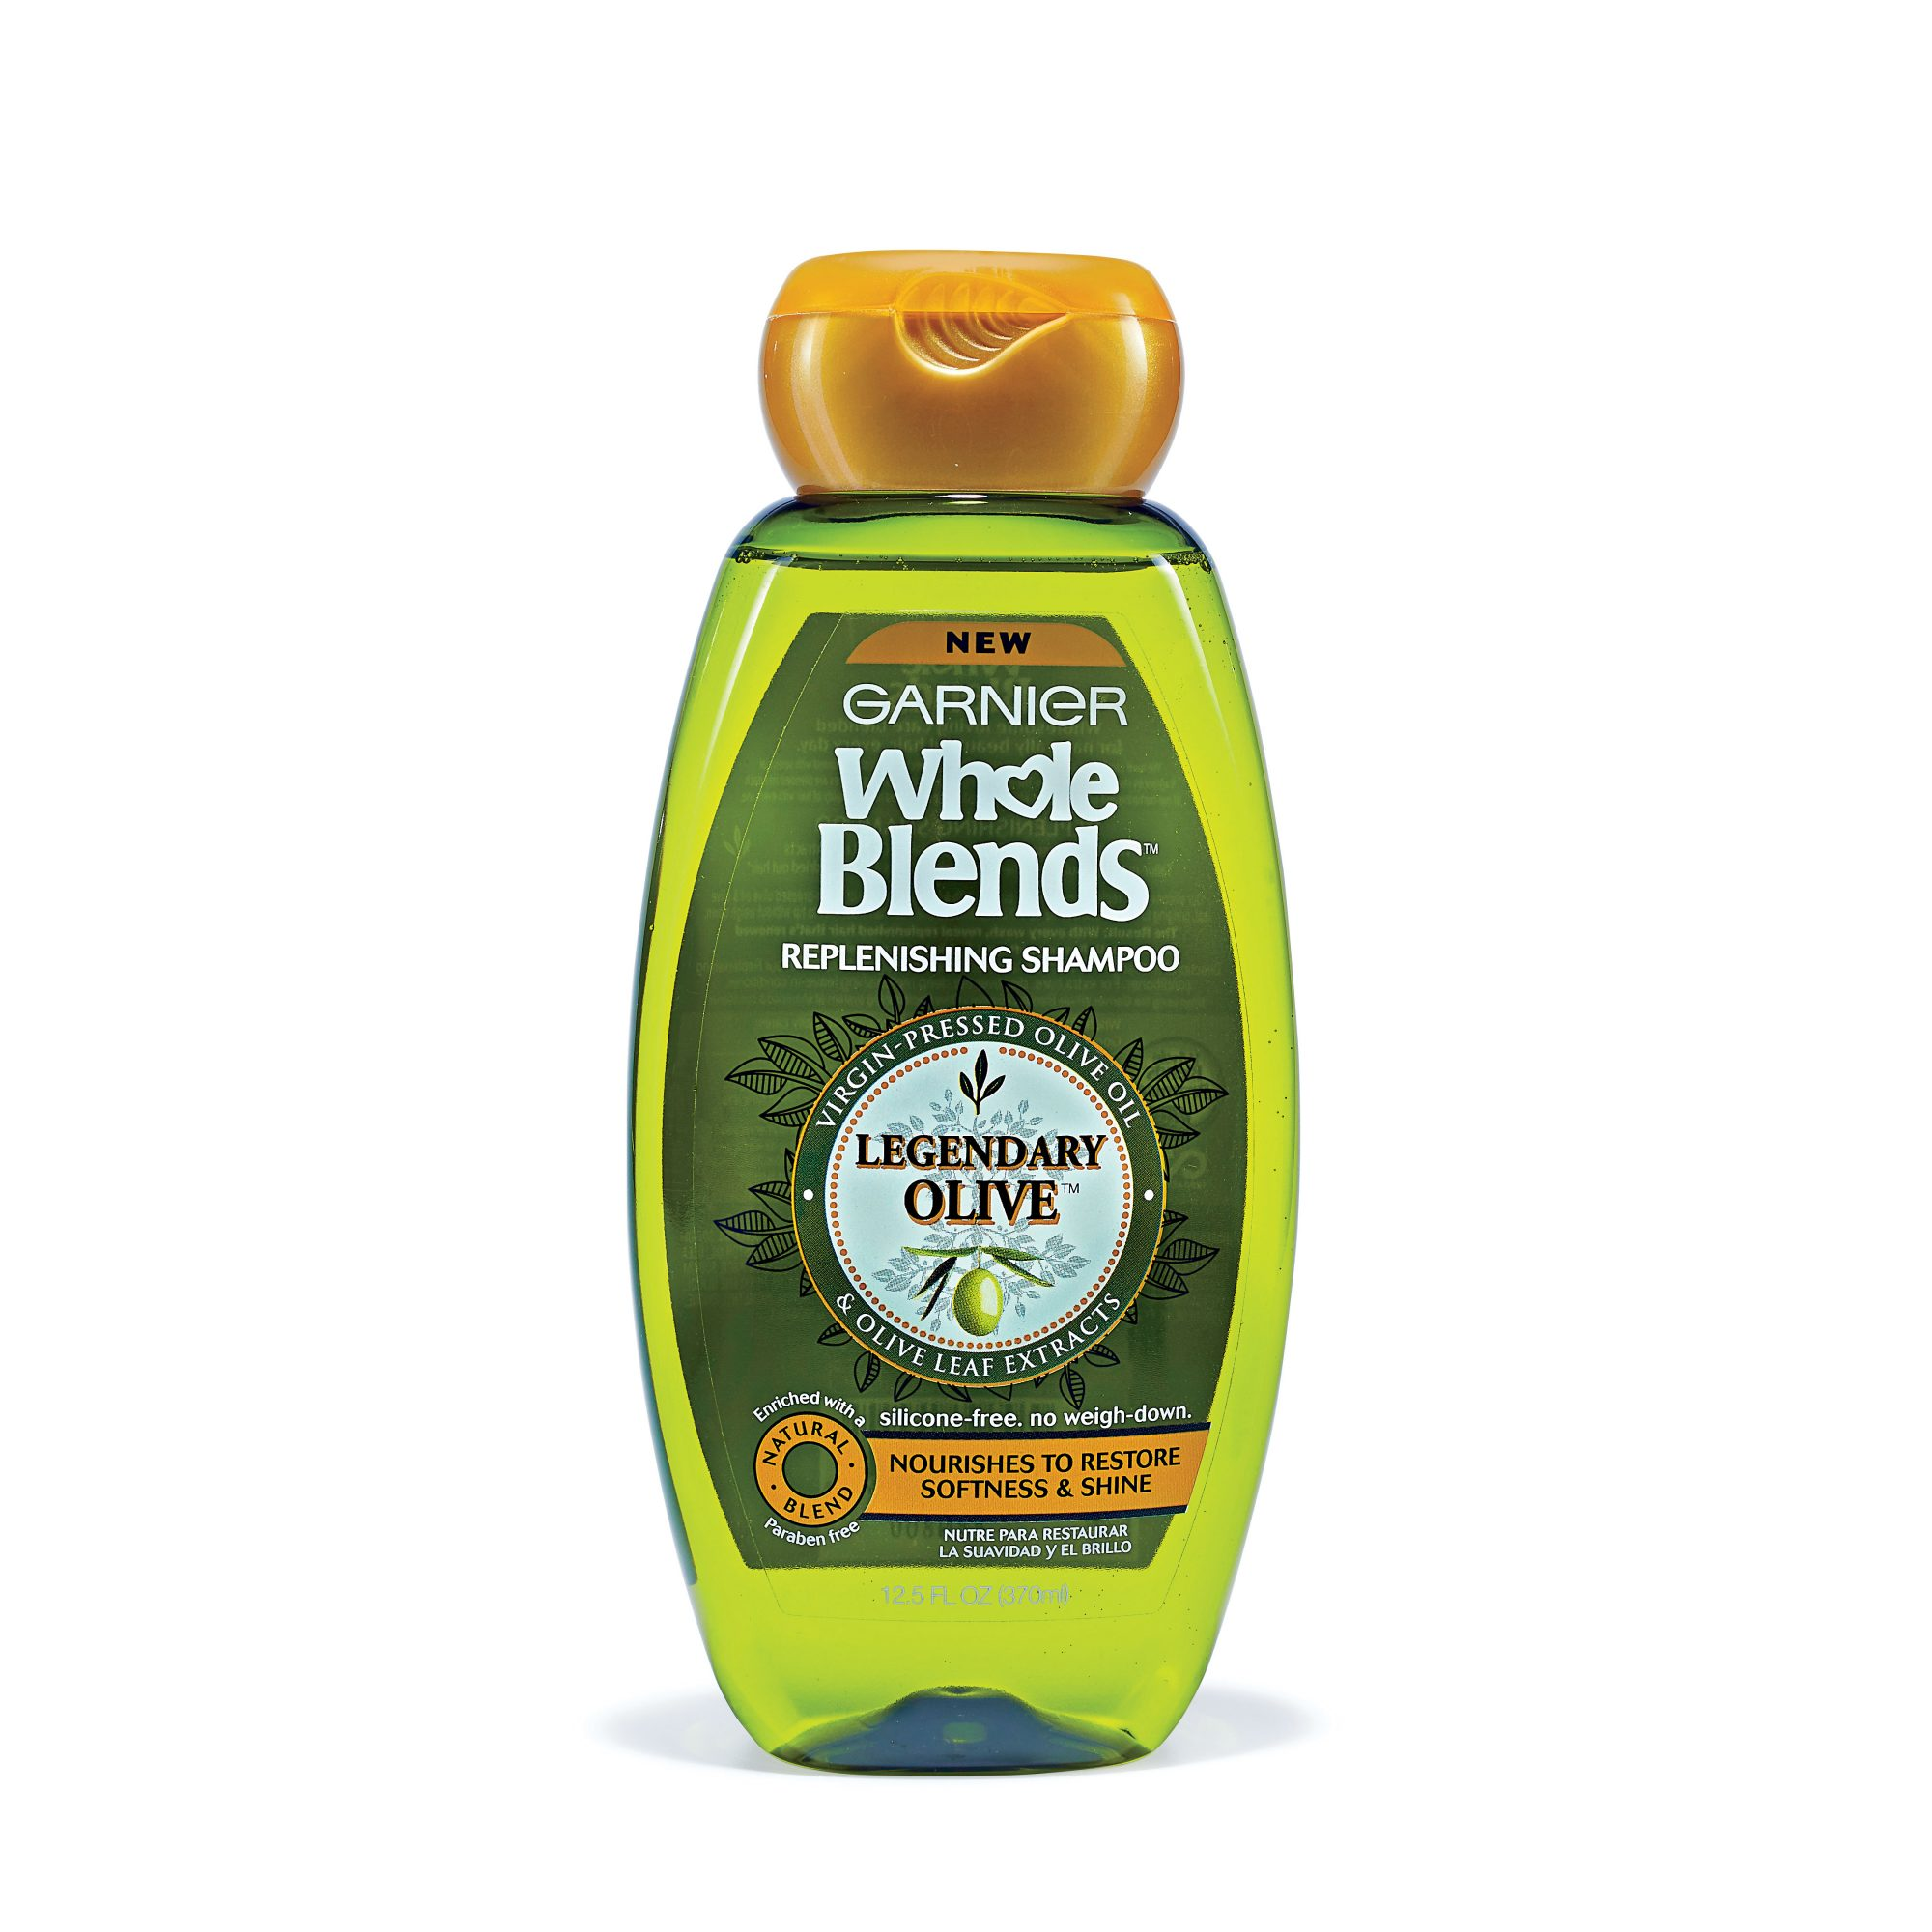 Garnier Whole Blends Replenishing Shampoo